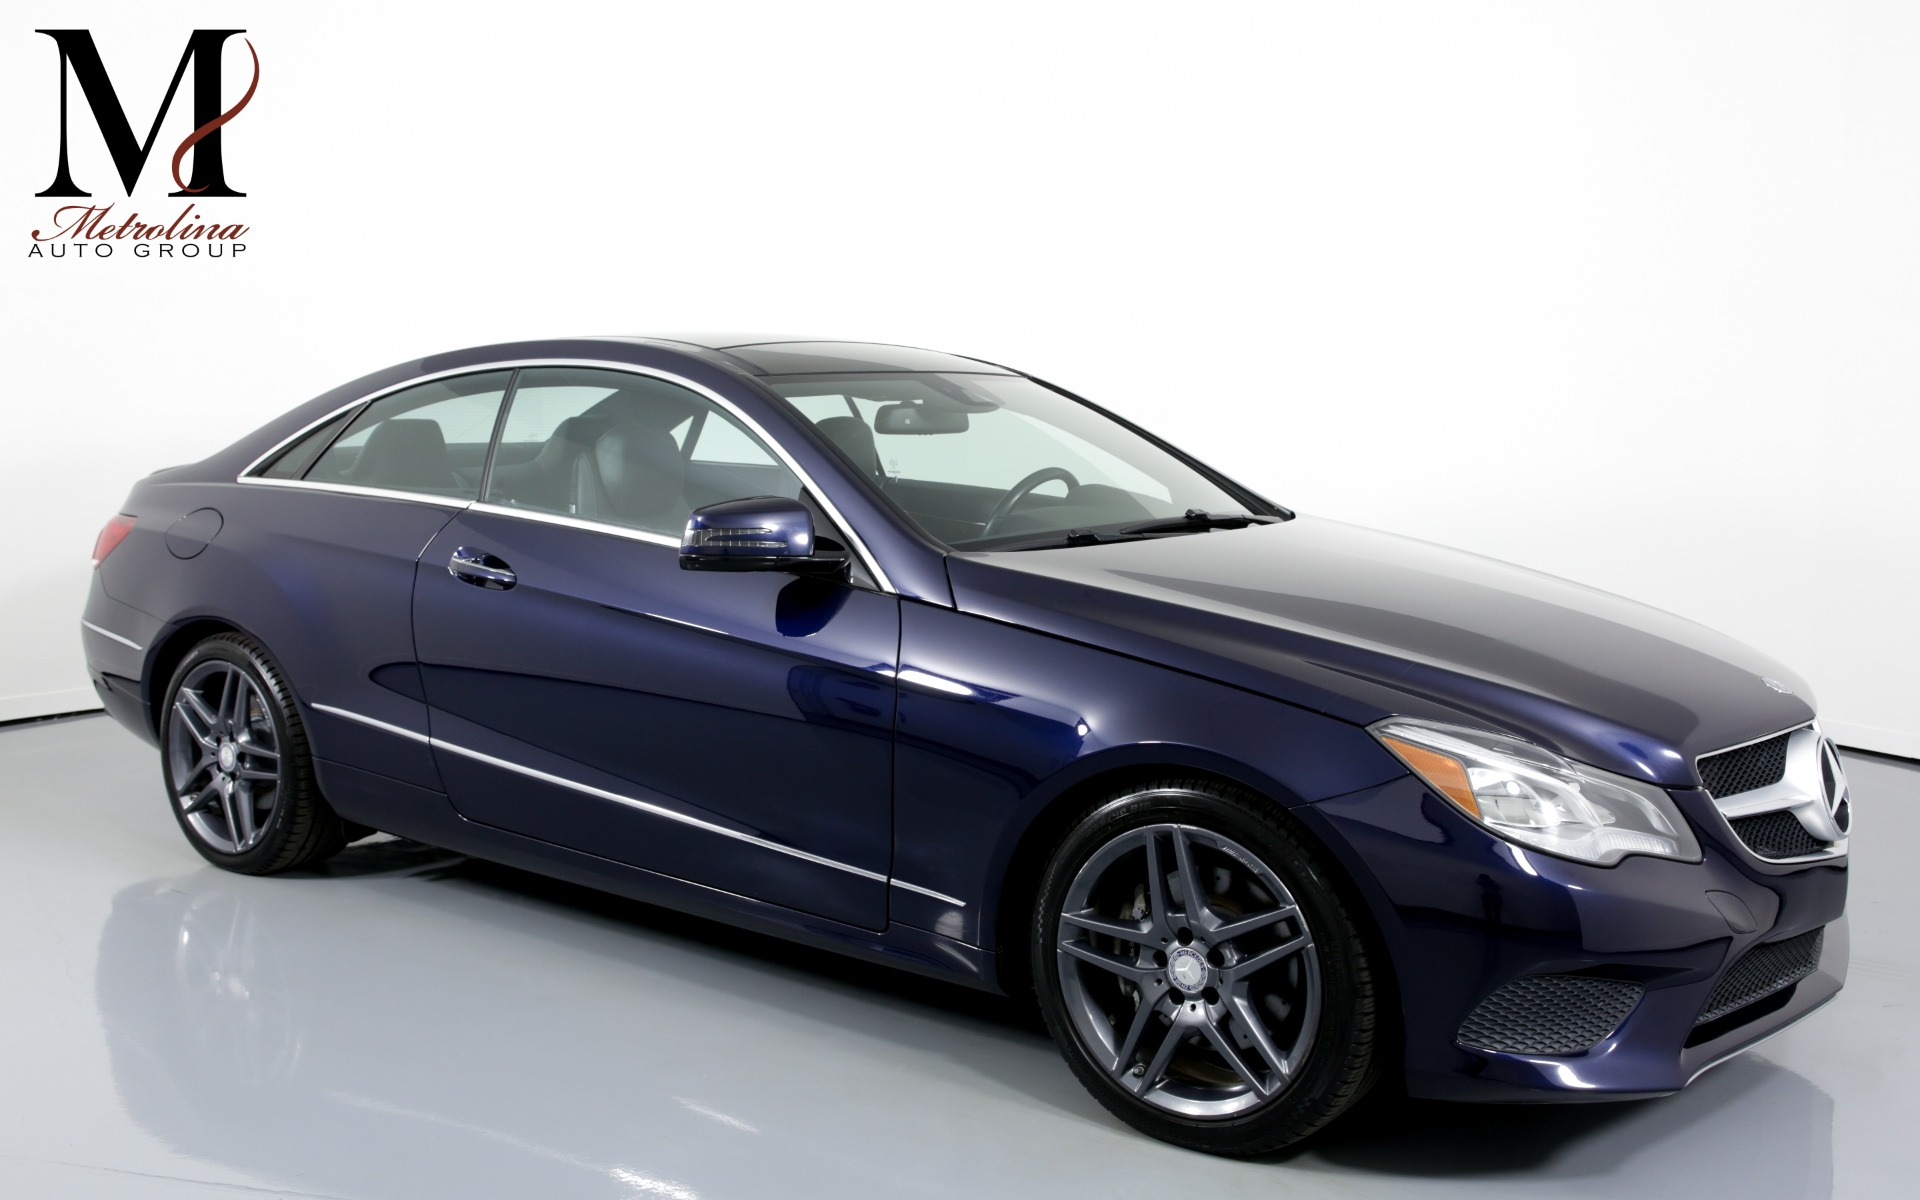 Used 2014 Mercedes-Benz E-Class E 350 4MATIC AWD 2dr Coupe for sale Sold at Metrolina Auto Group in Charlotte NC 28217 - 1